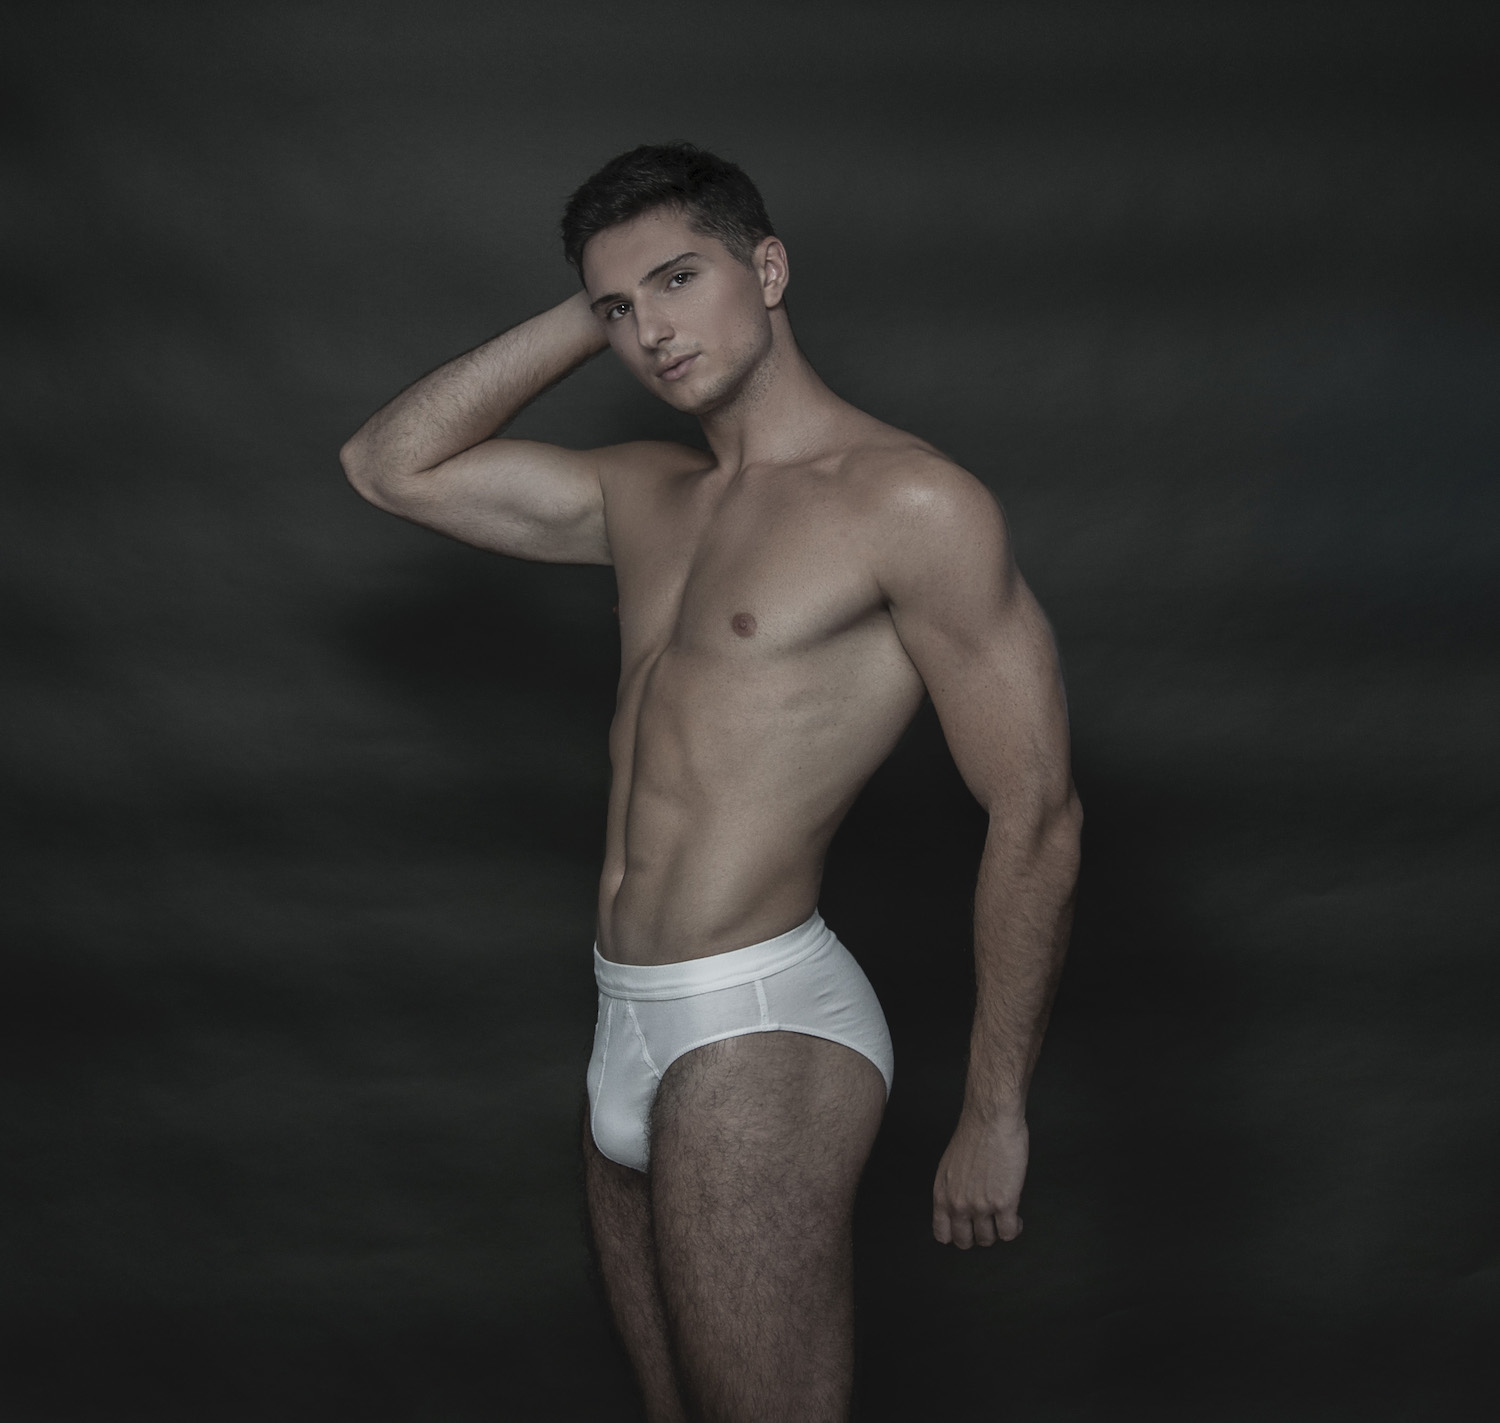 Model Ognjen by Inch photography - Abanderado underwear